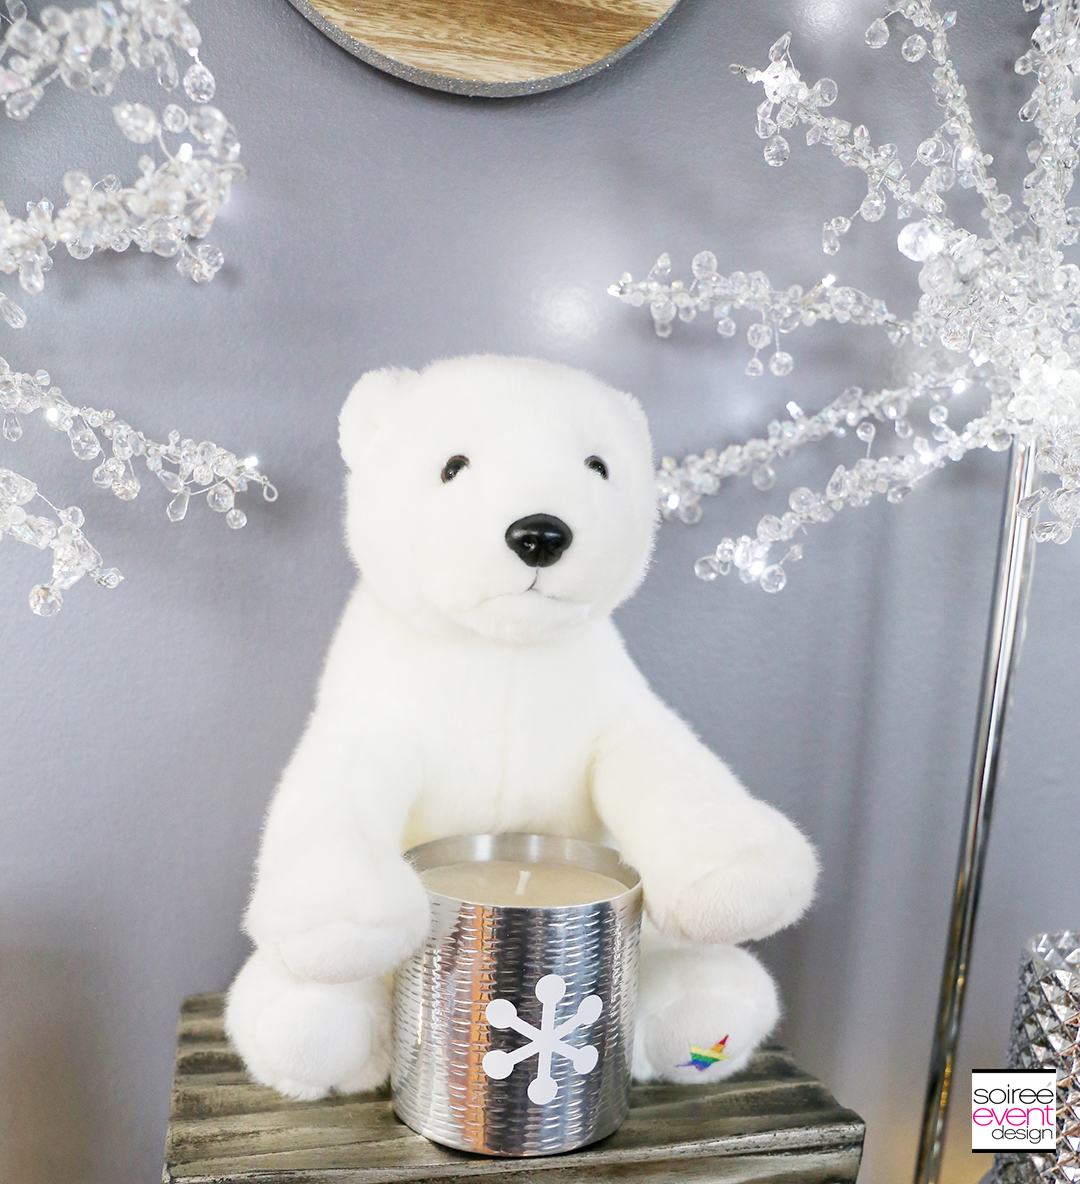 Farmhouse Holiday Decor - Plush Polar Bear